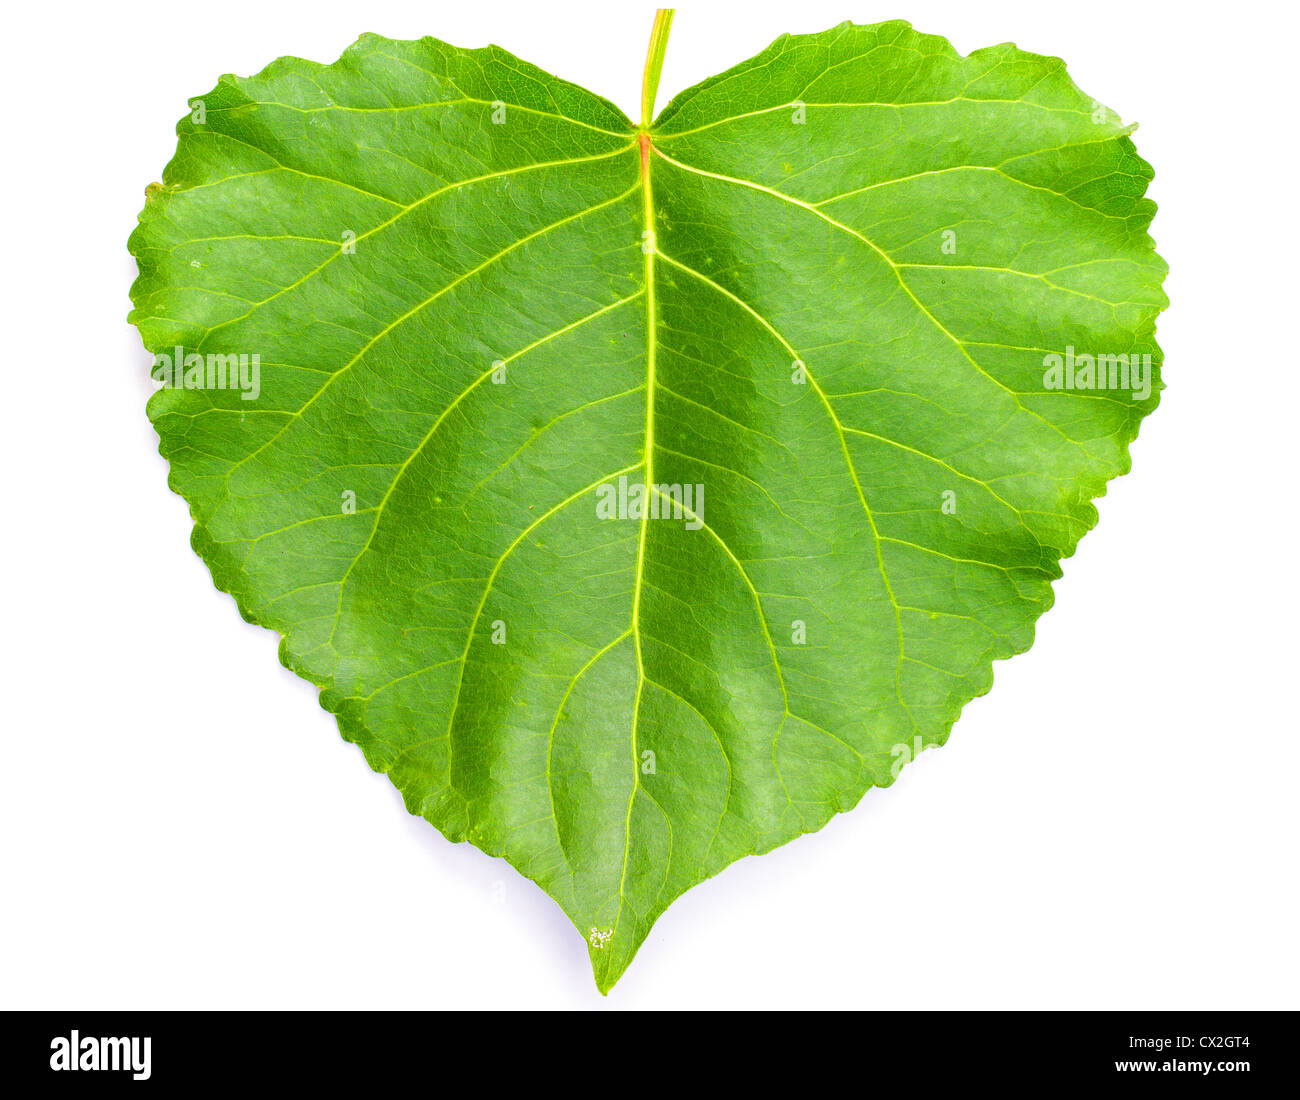 Green Heart Shaped Leaf On White Stock Photo 50458916 Alamy